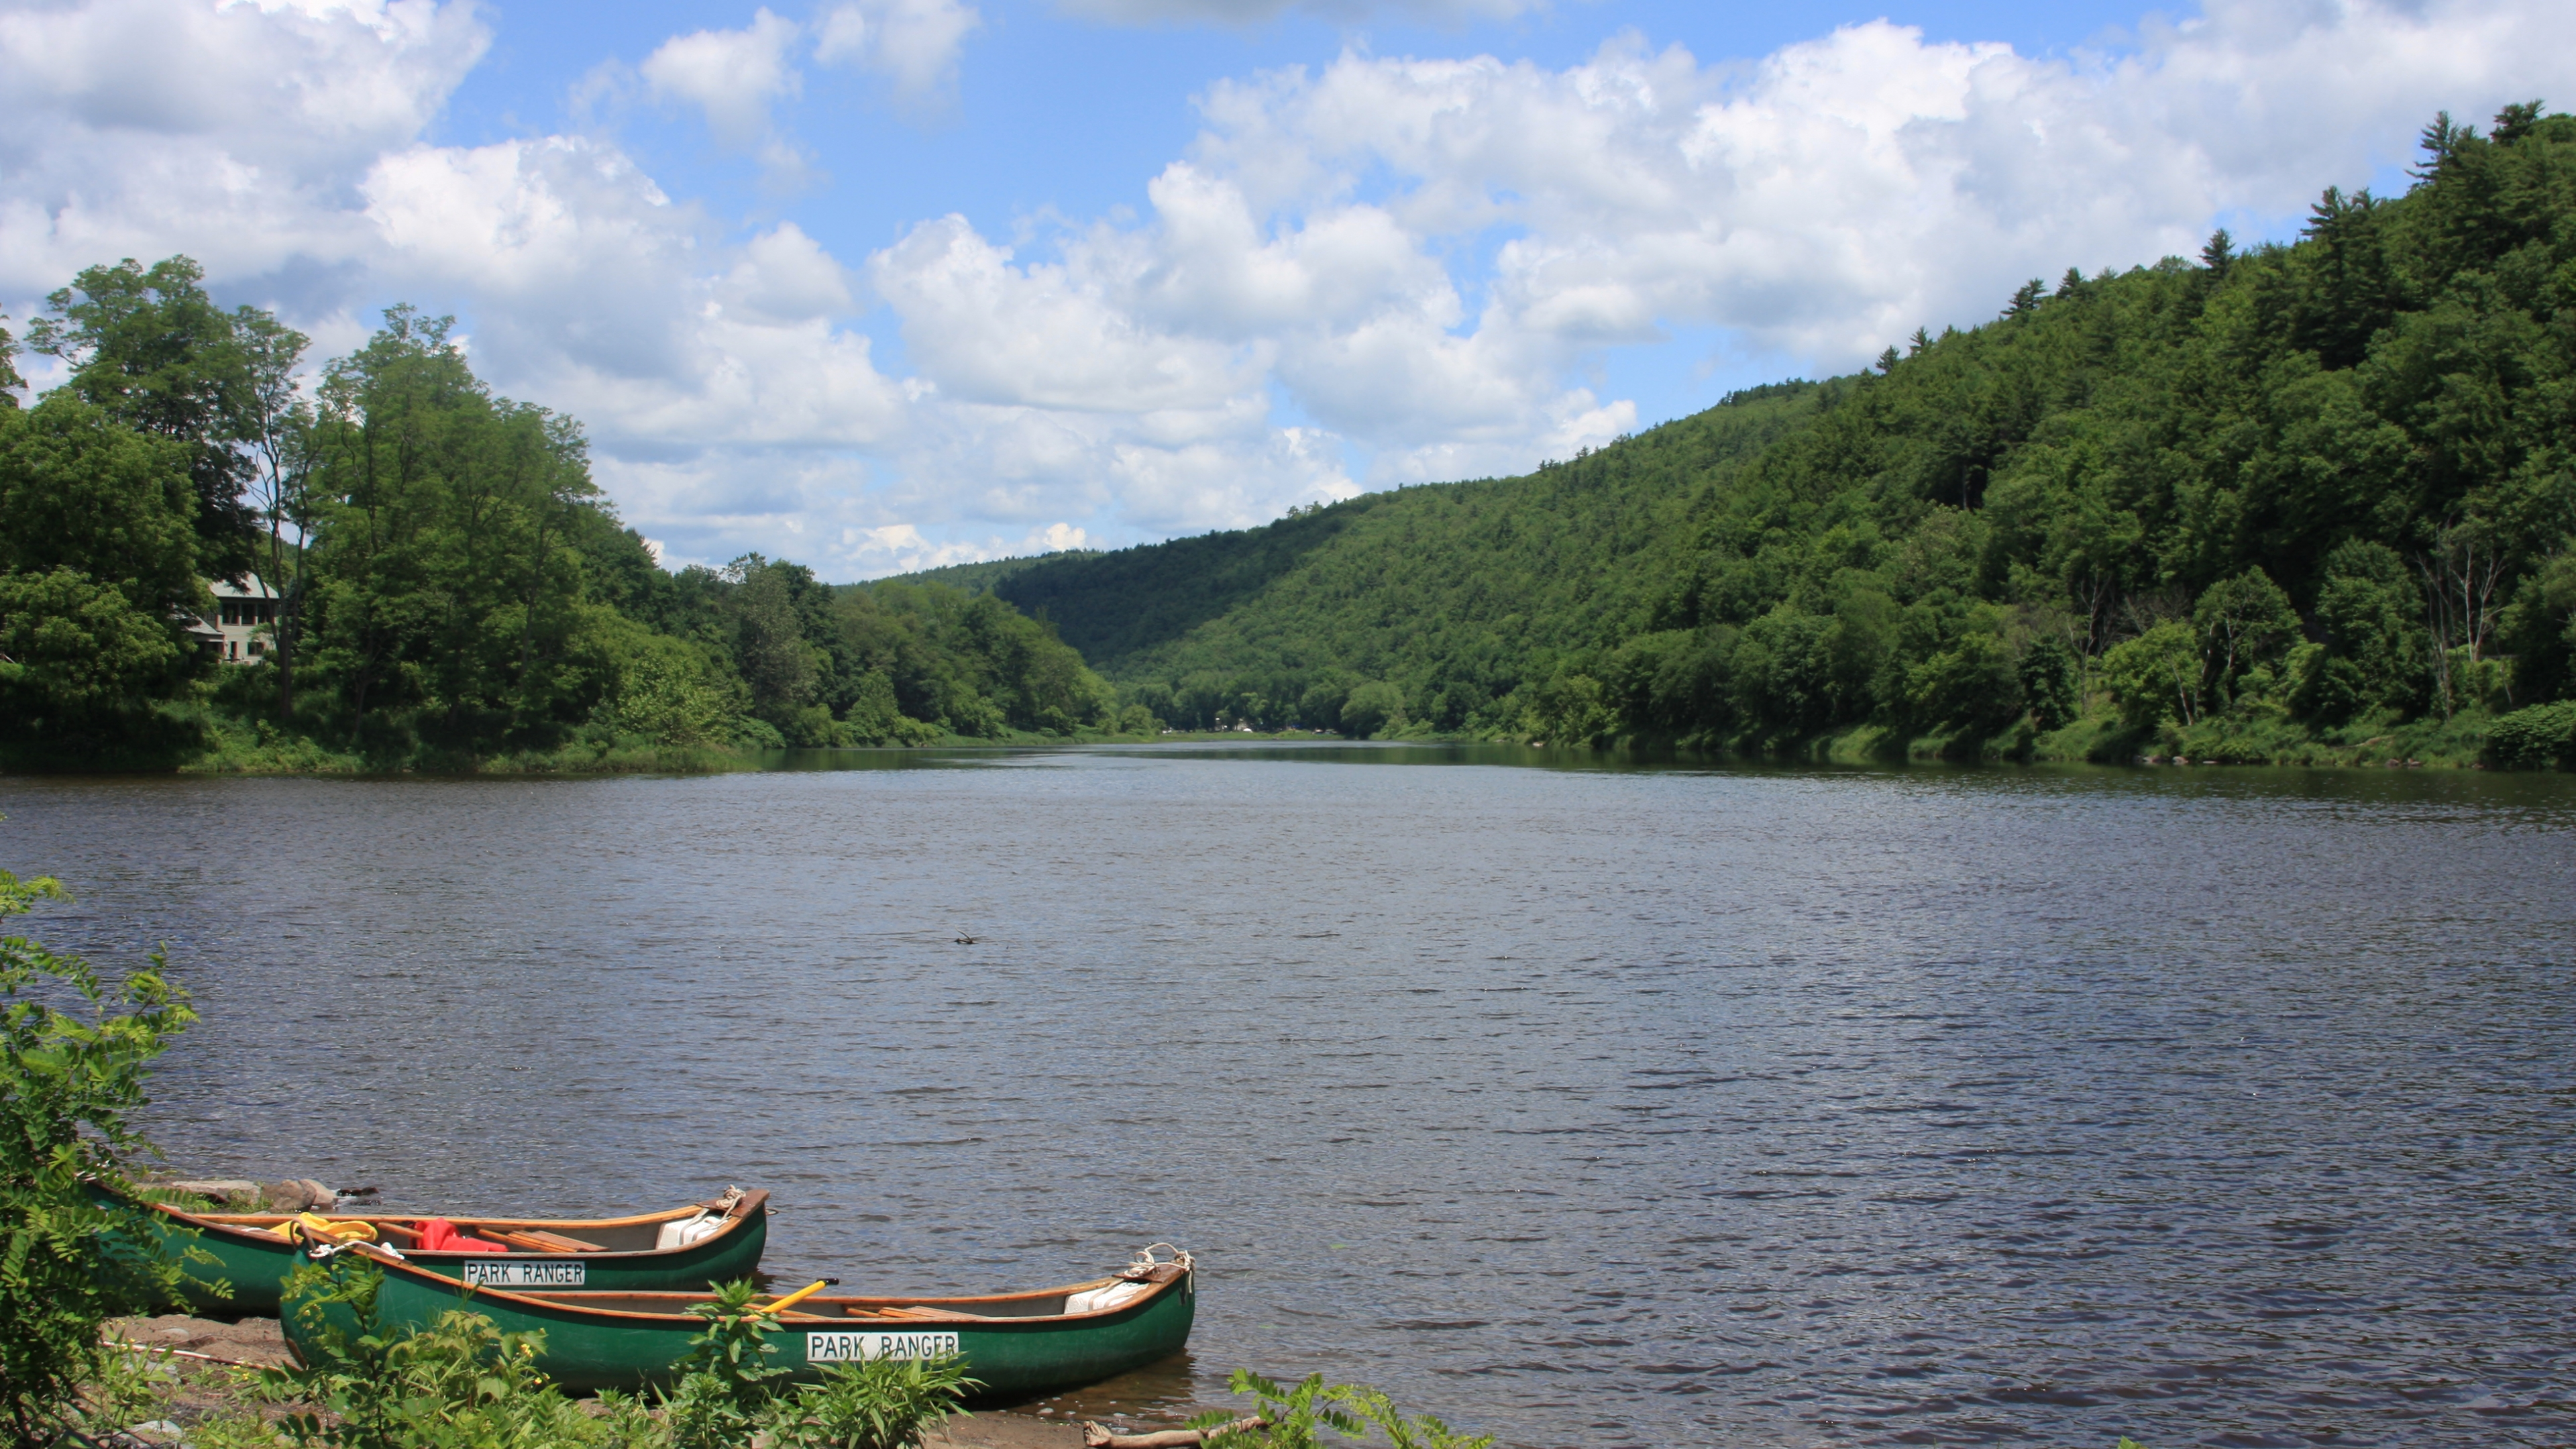 two canoes parked on the bank of the upper delaware river